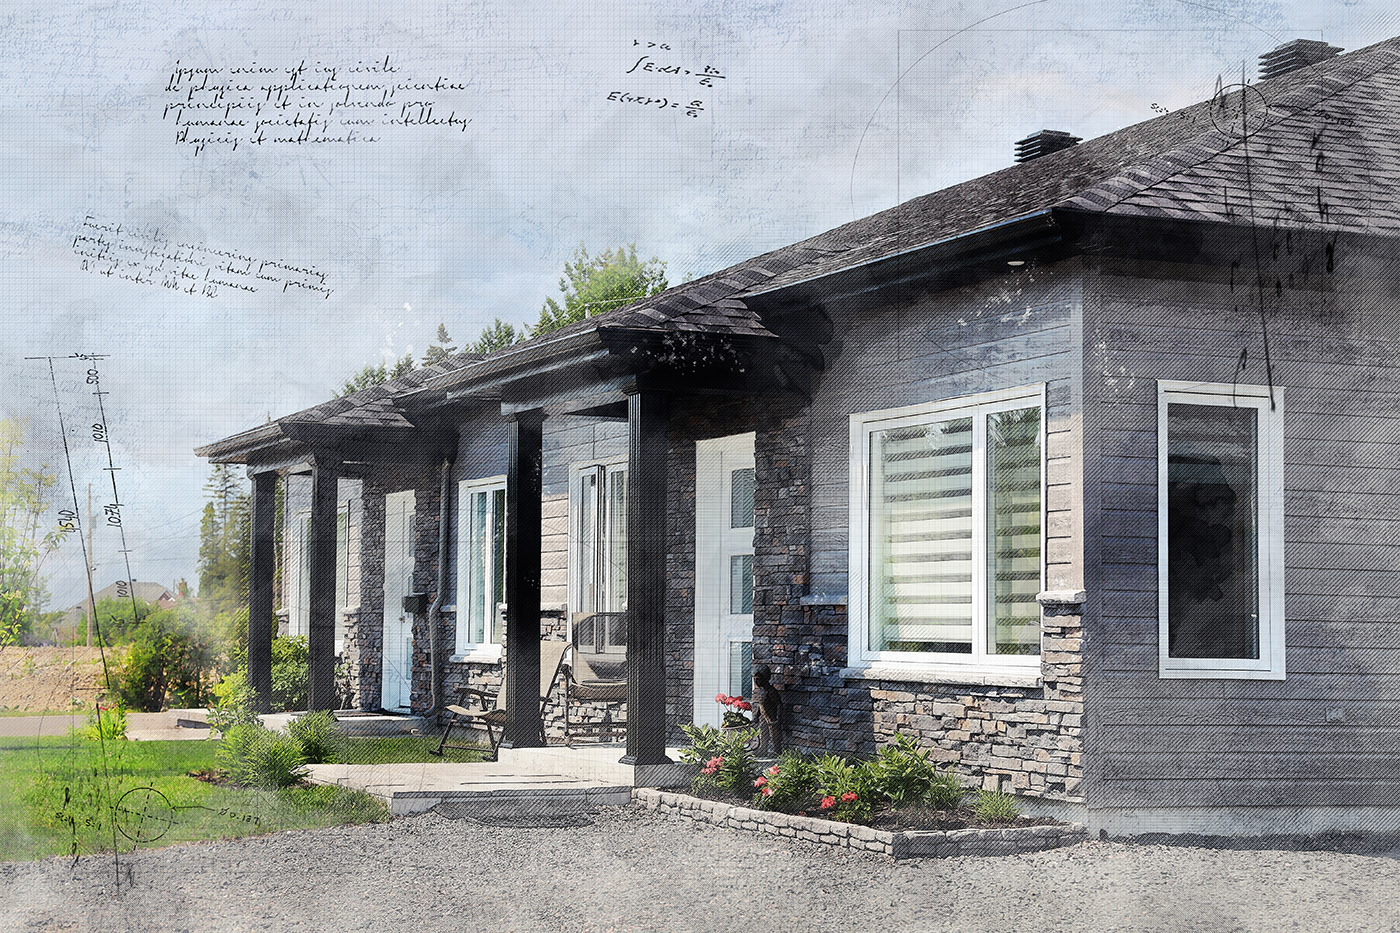 Semi Detached House Sketch Image - Stock Photography